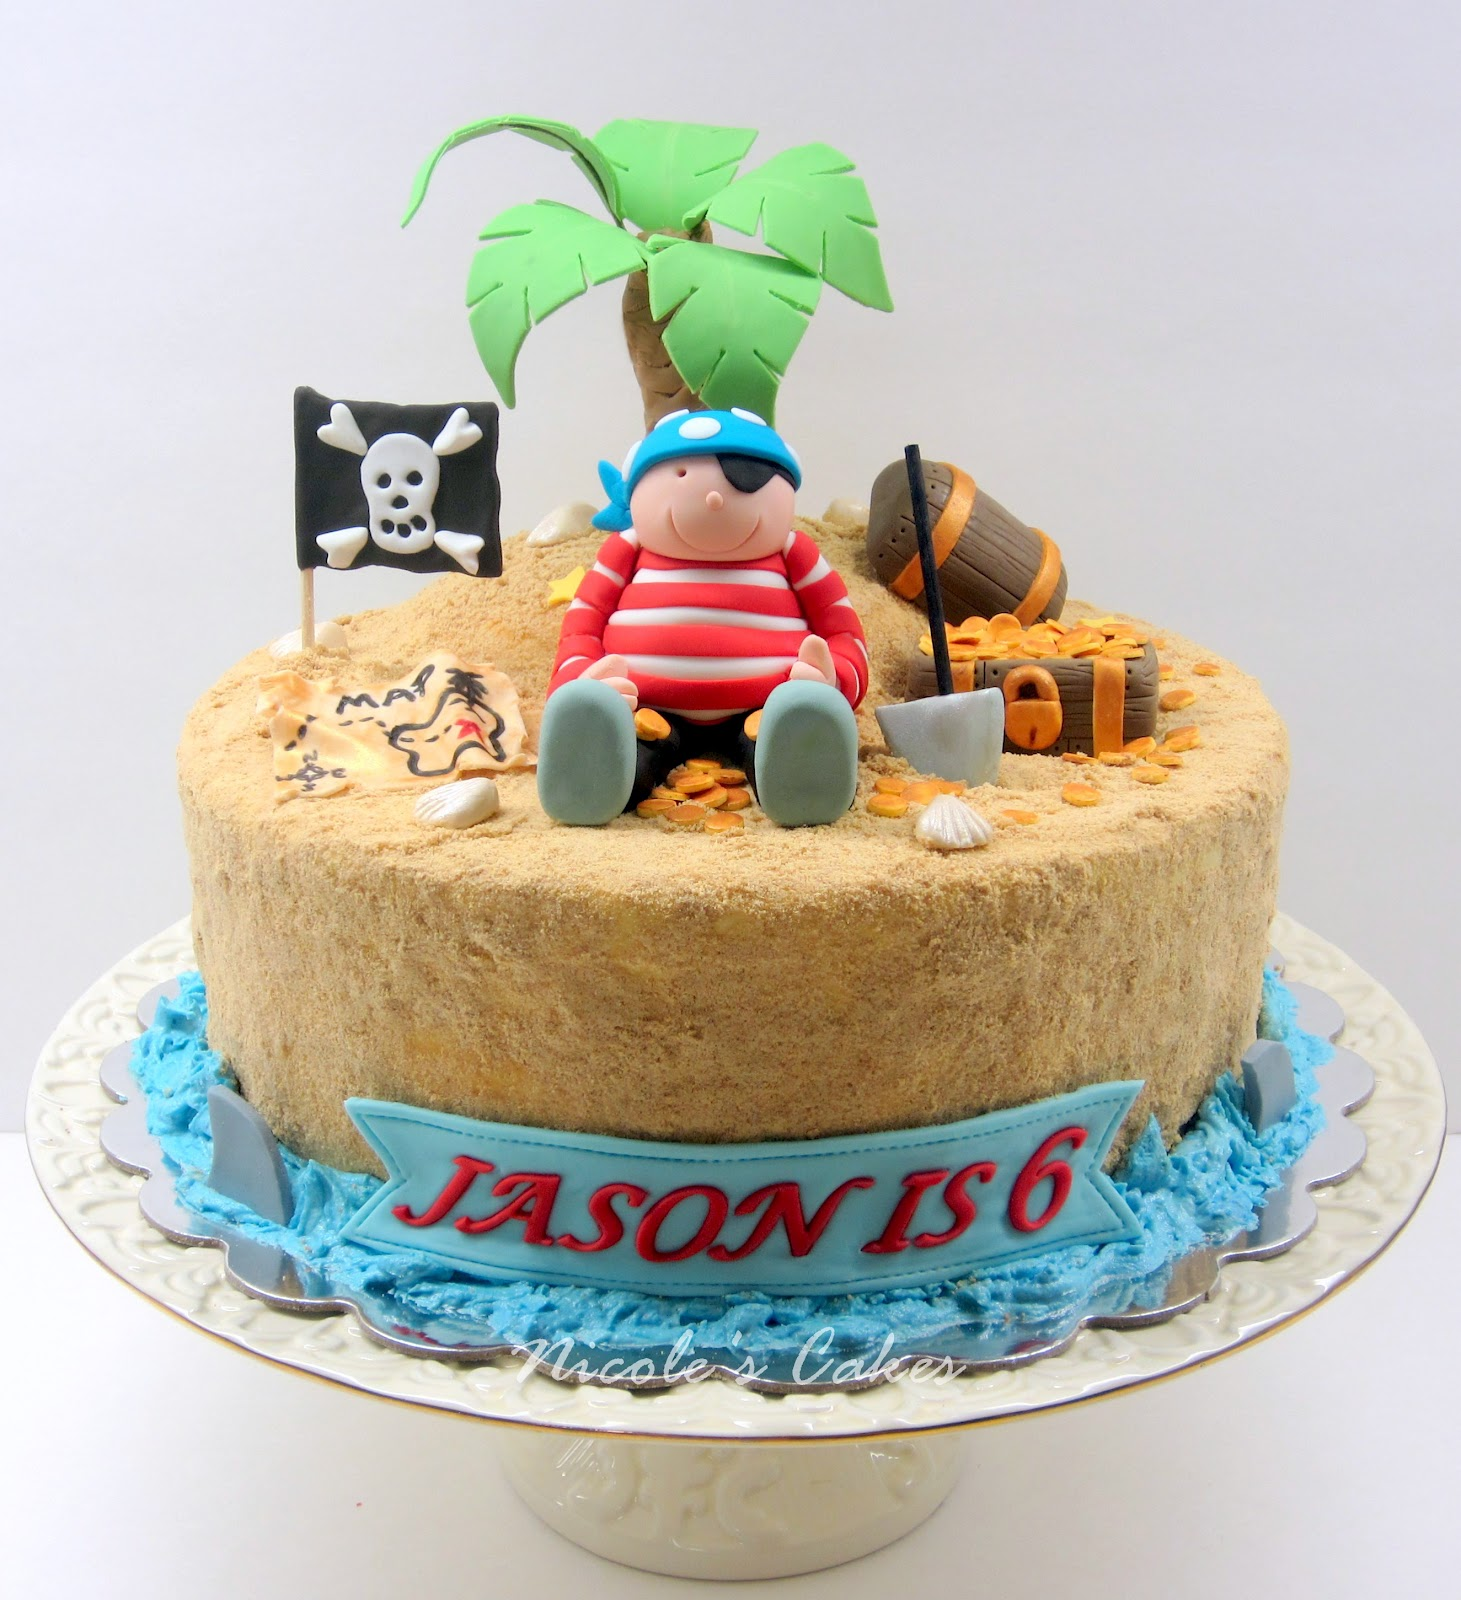 Images Pirate Birthday Cake : Birthday cakes on Pinterest Pirate Birthday Cake, Pirate ...